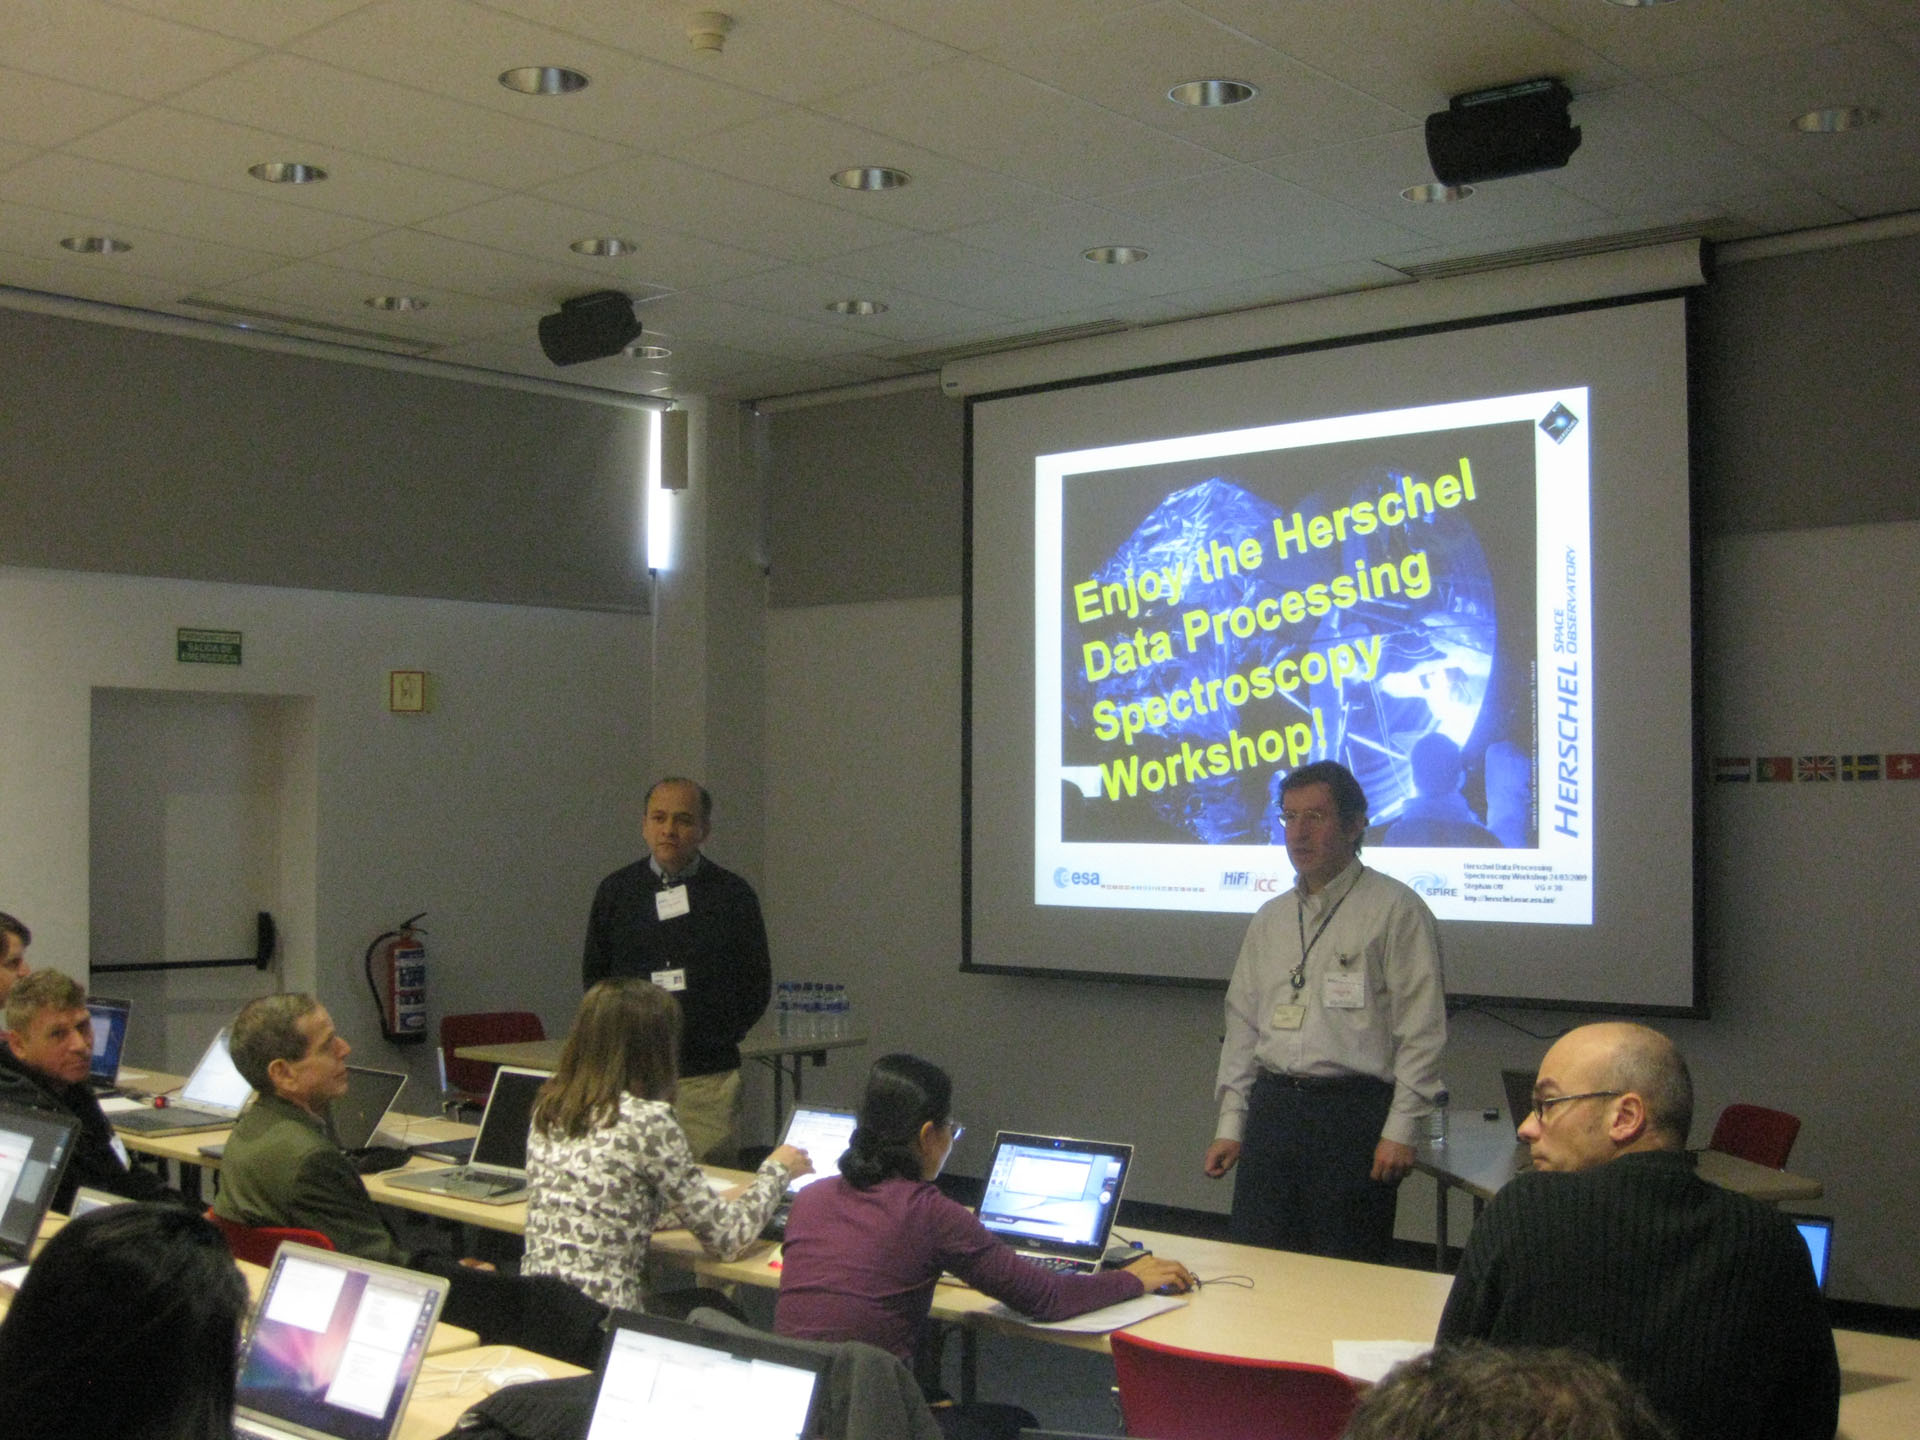 Herschel 'hands-on' data processing workshops